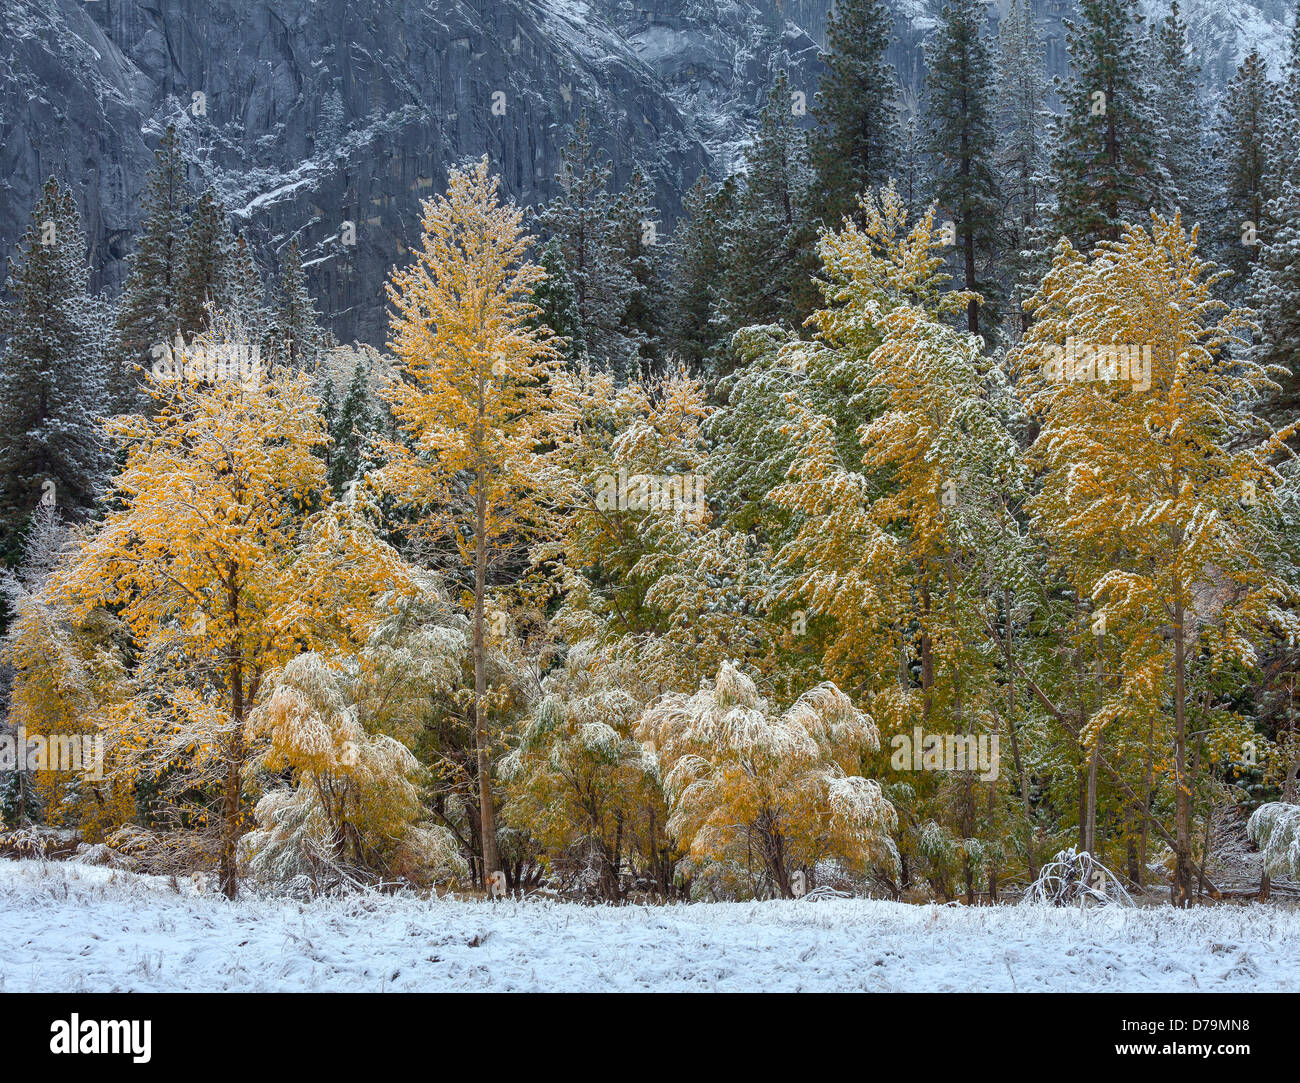 Yosemite National Park, California Trees of El Capitan Meadow showing late fall colors and a dusting of snow, Yosemite - Stock Image